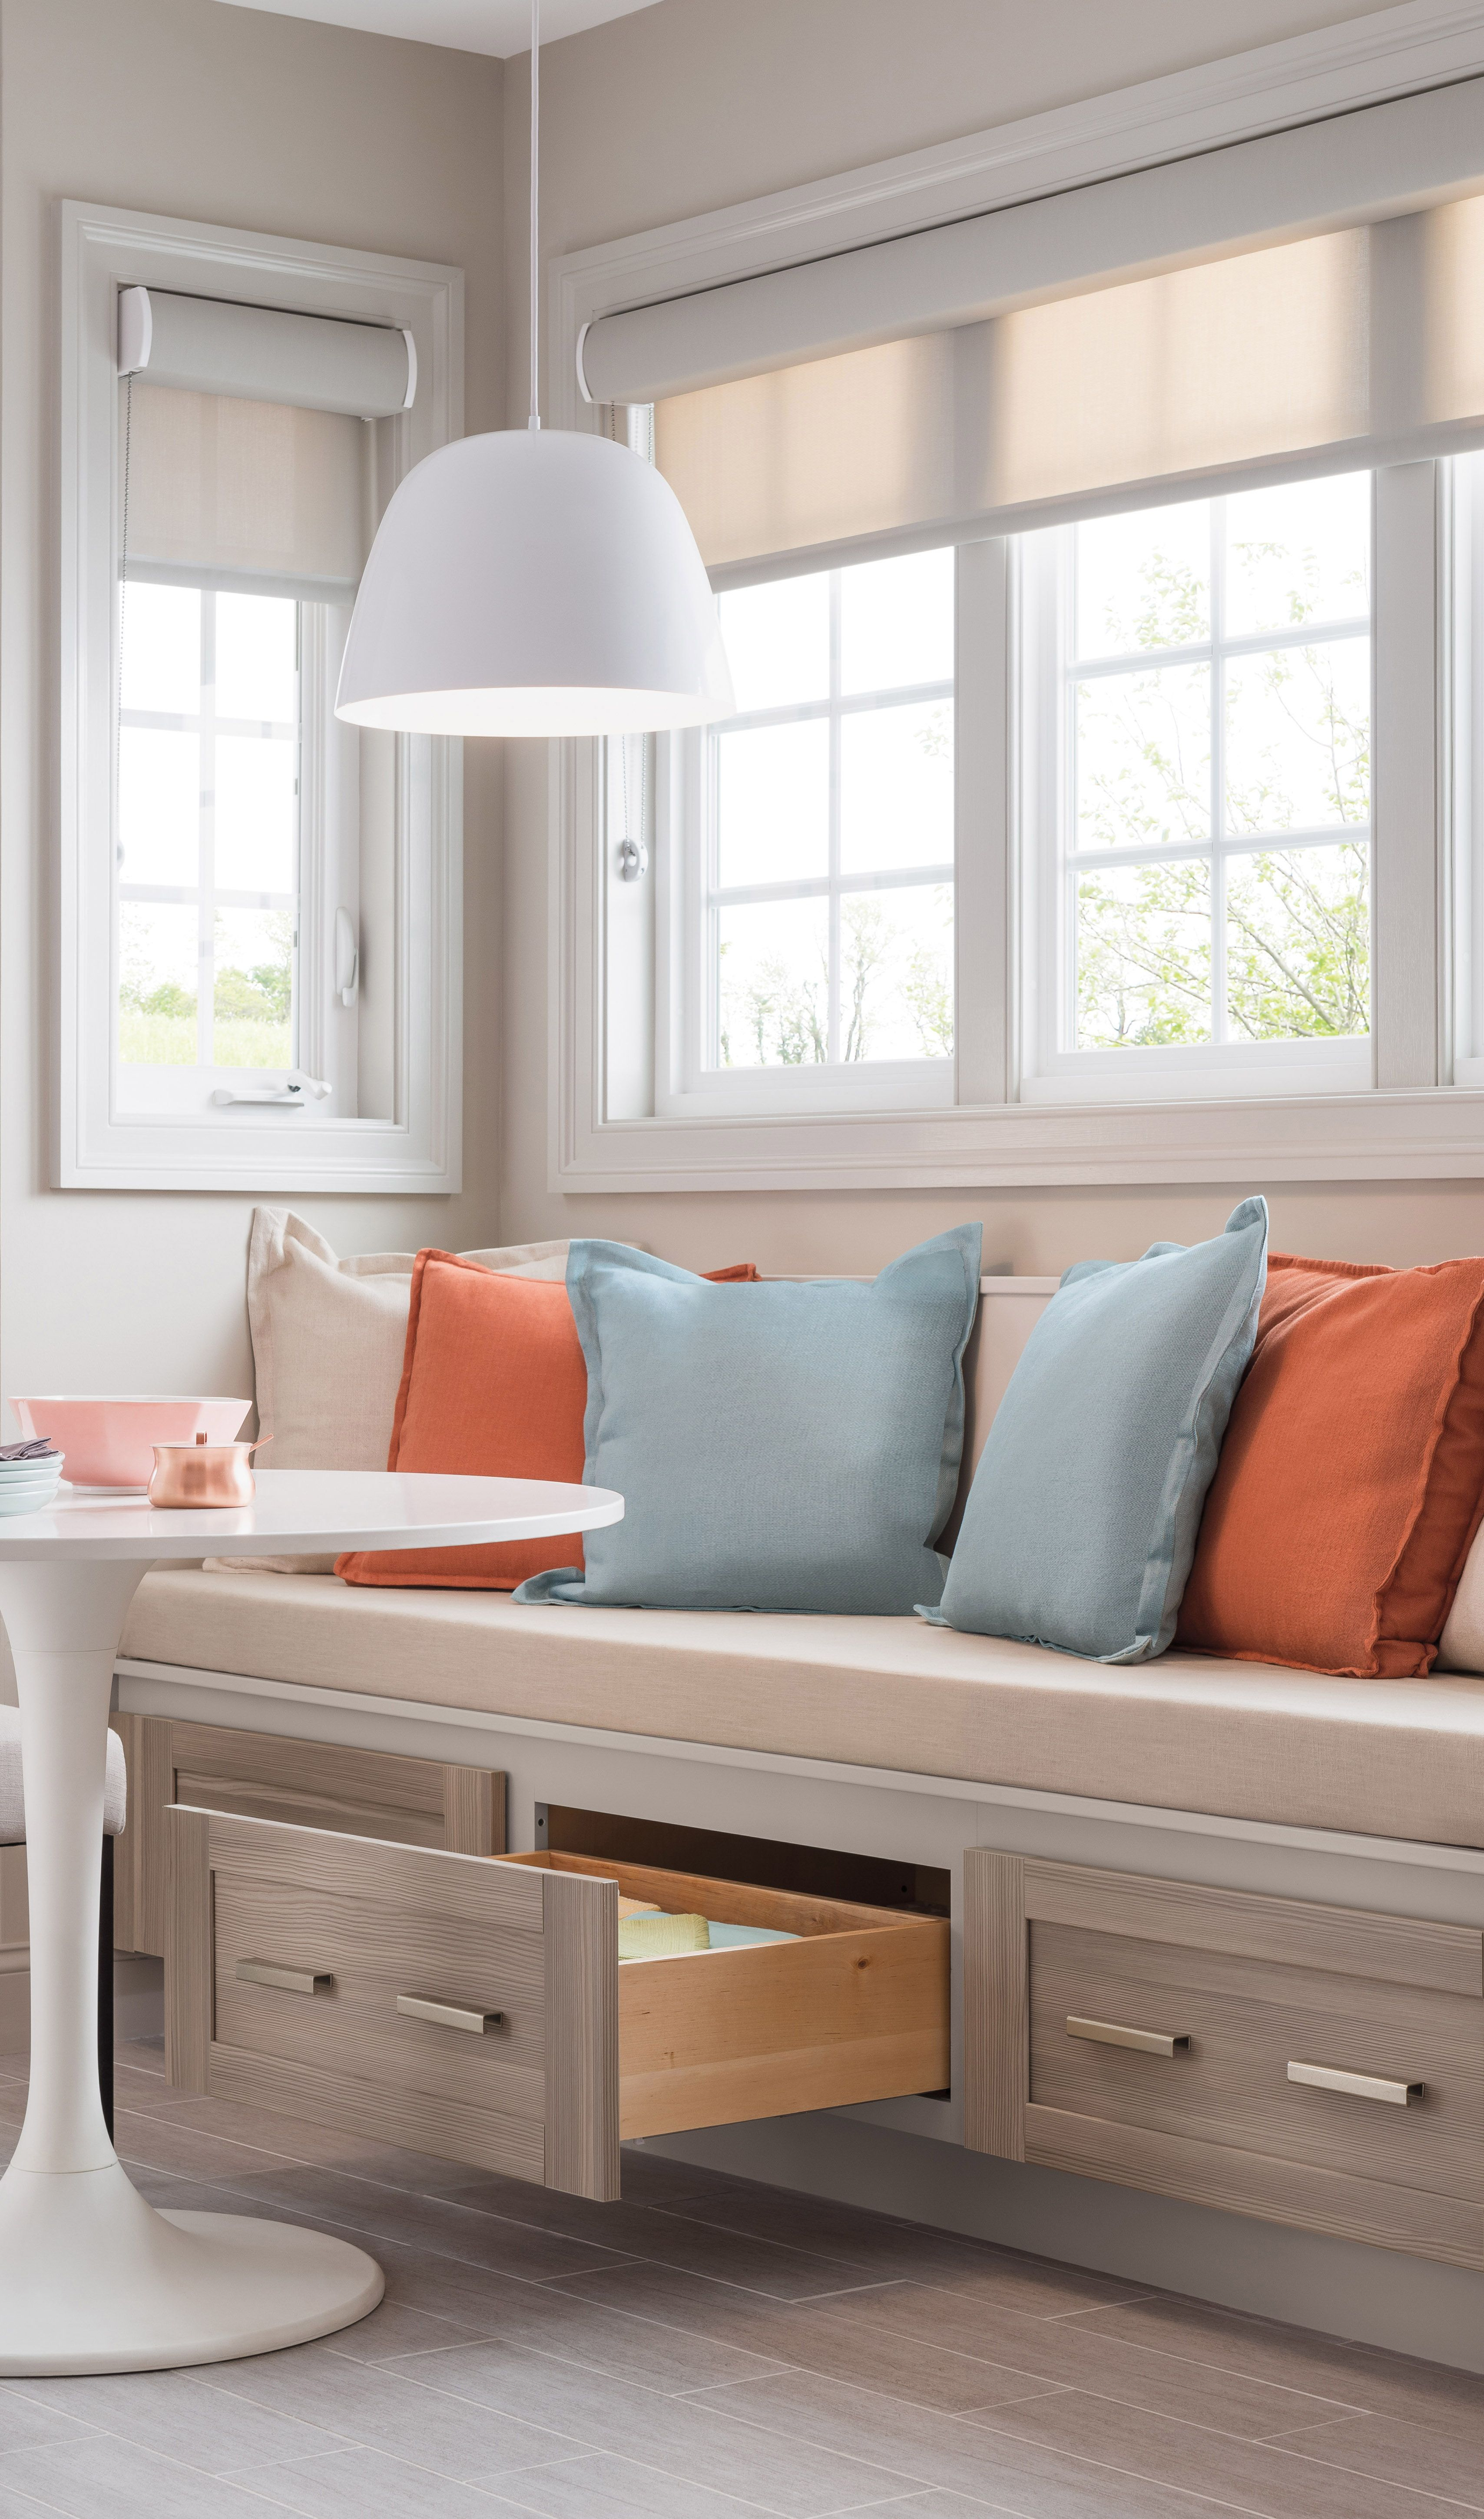 Create a breakfast nook with kitchen cabinetry it 39 s for Small kitchen seating